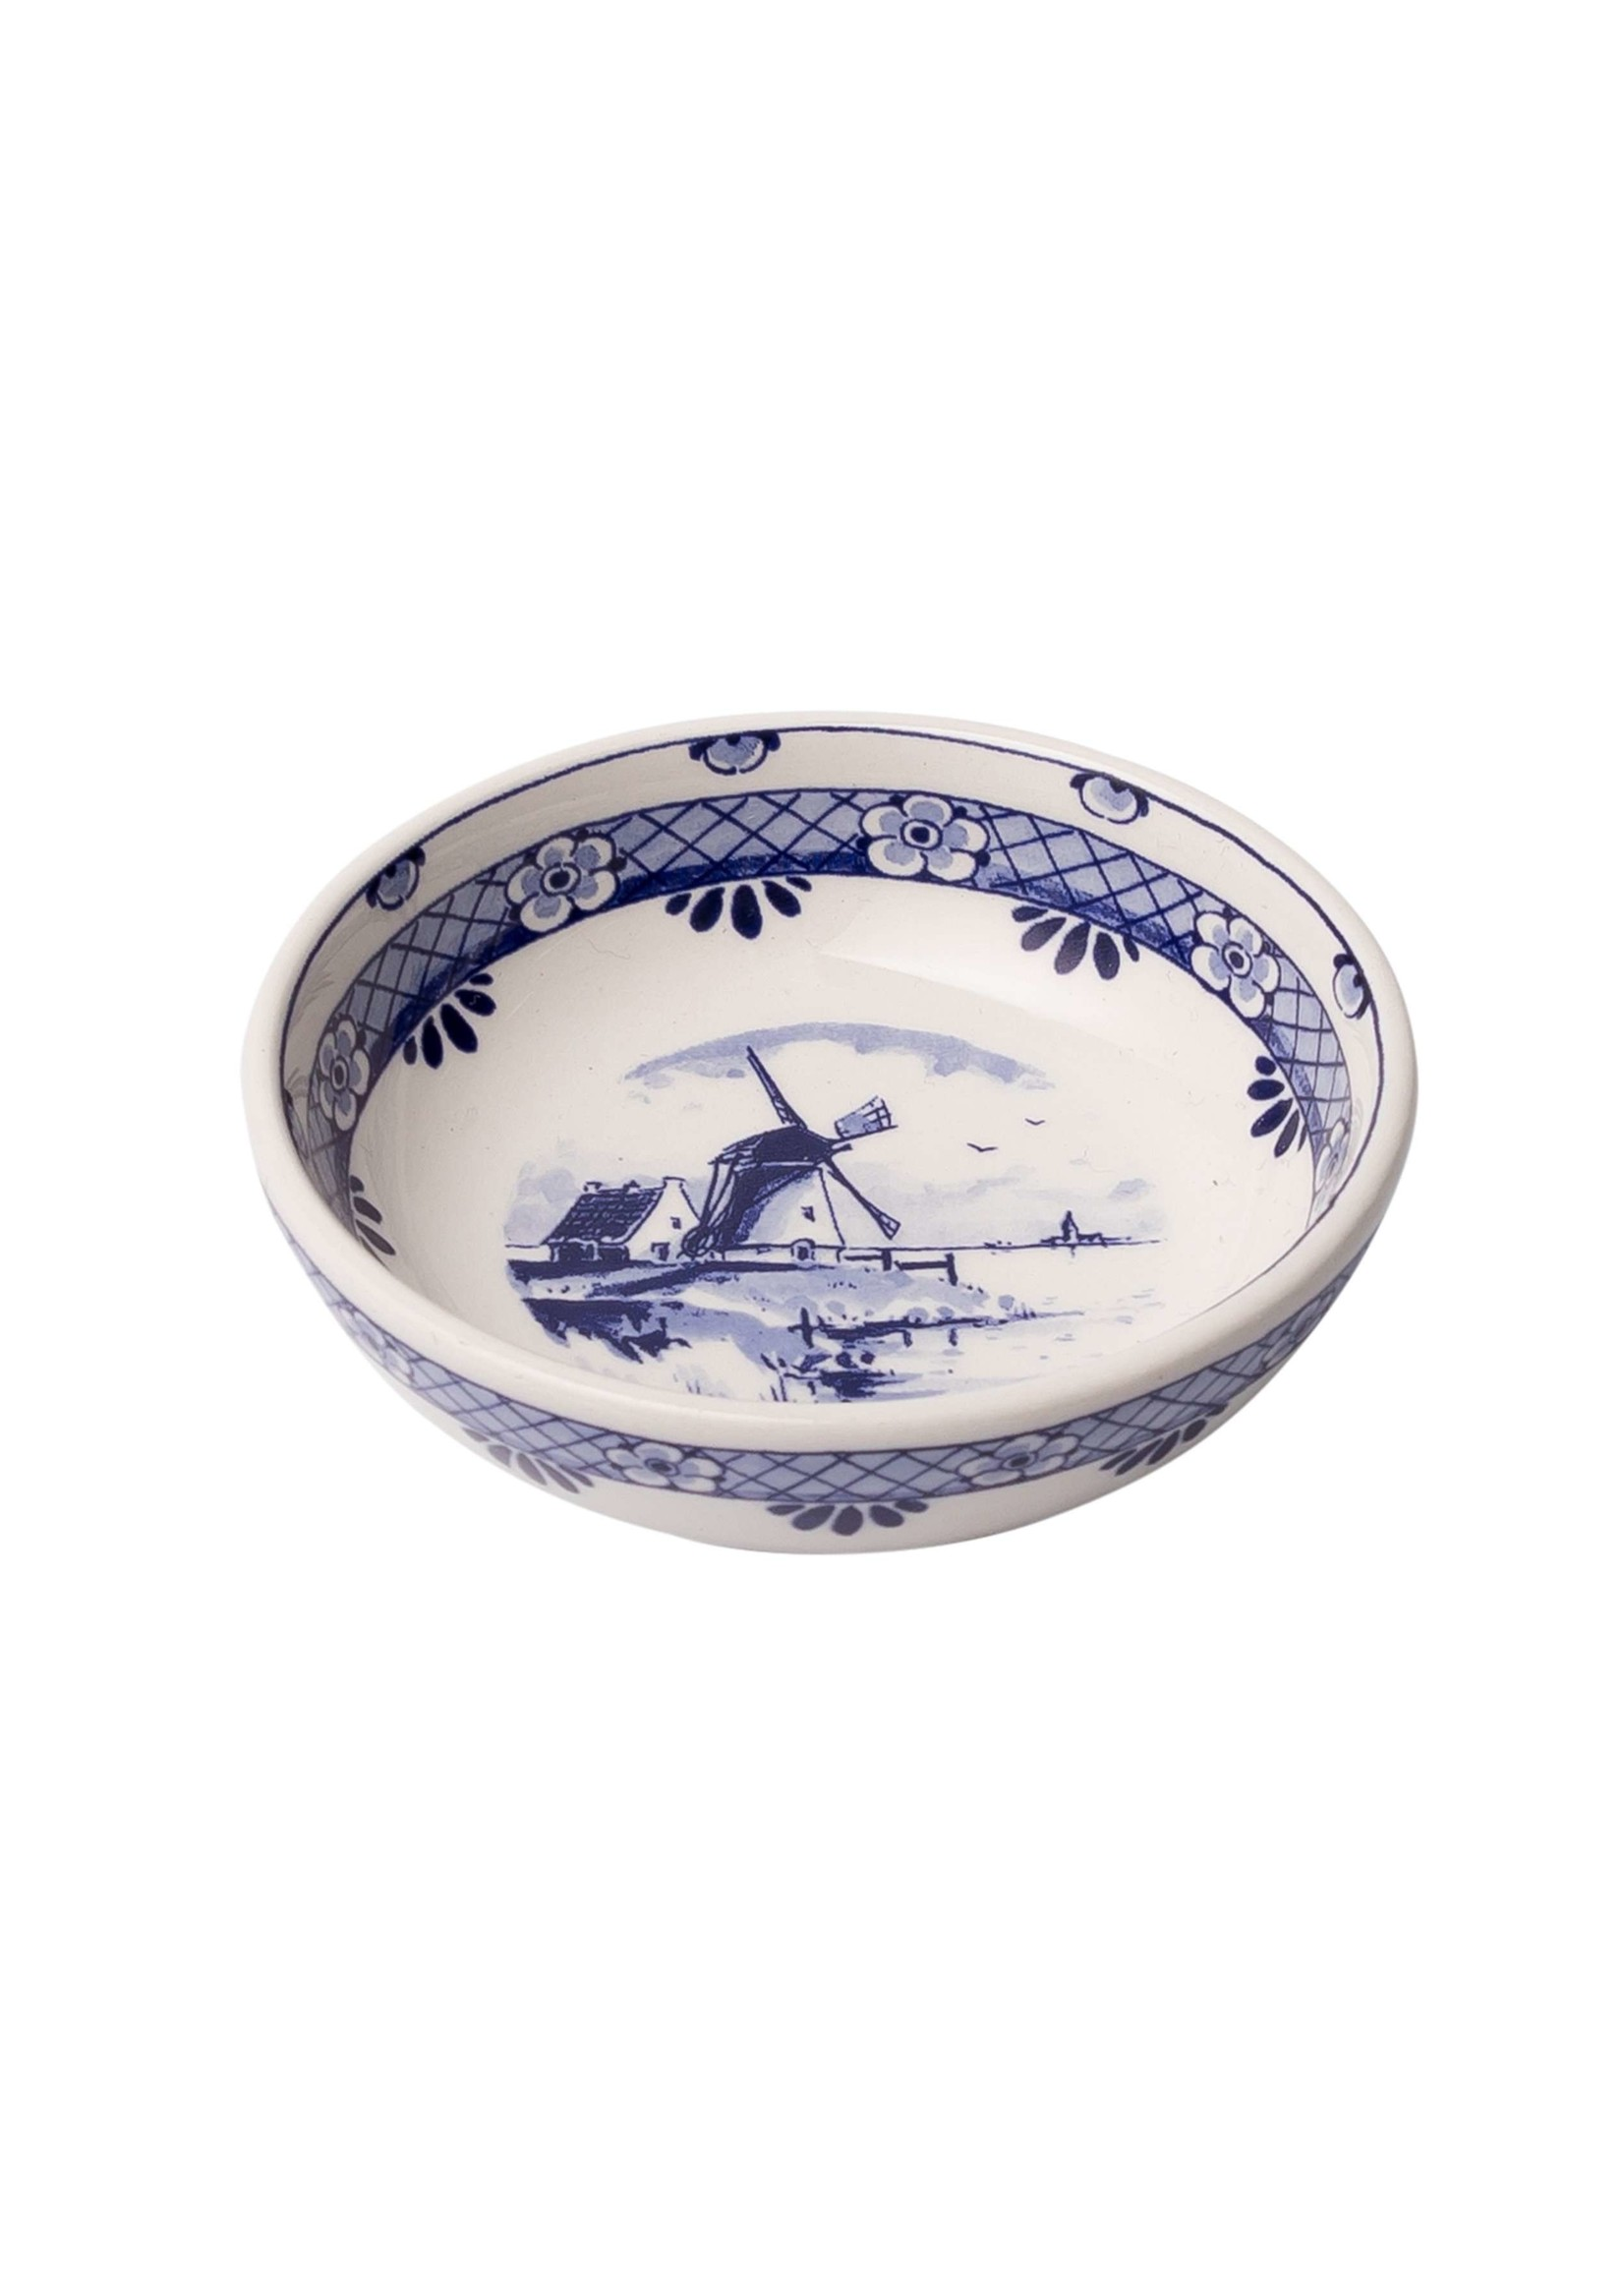 Delft Blue Tapas Bowl with a Windmill, Small